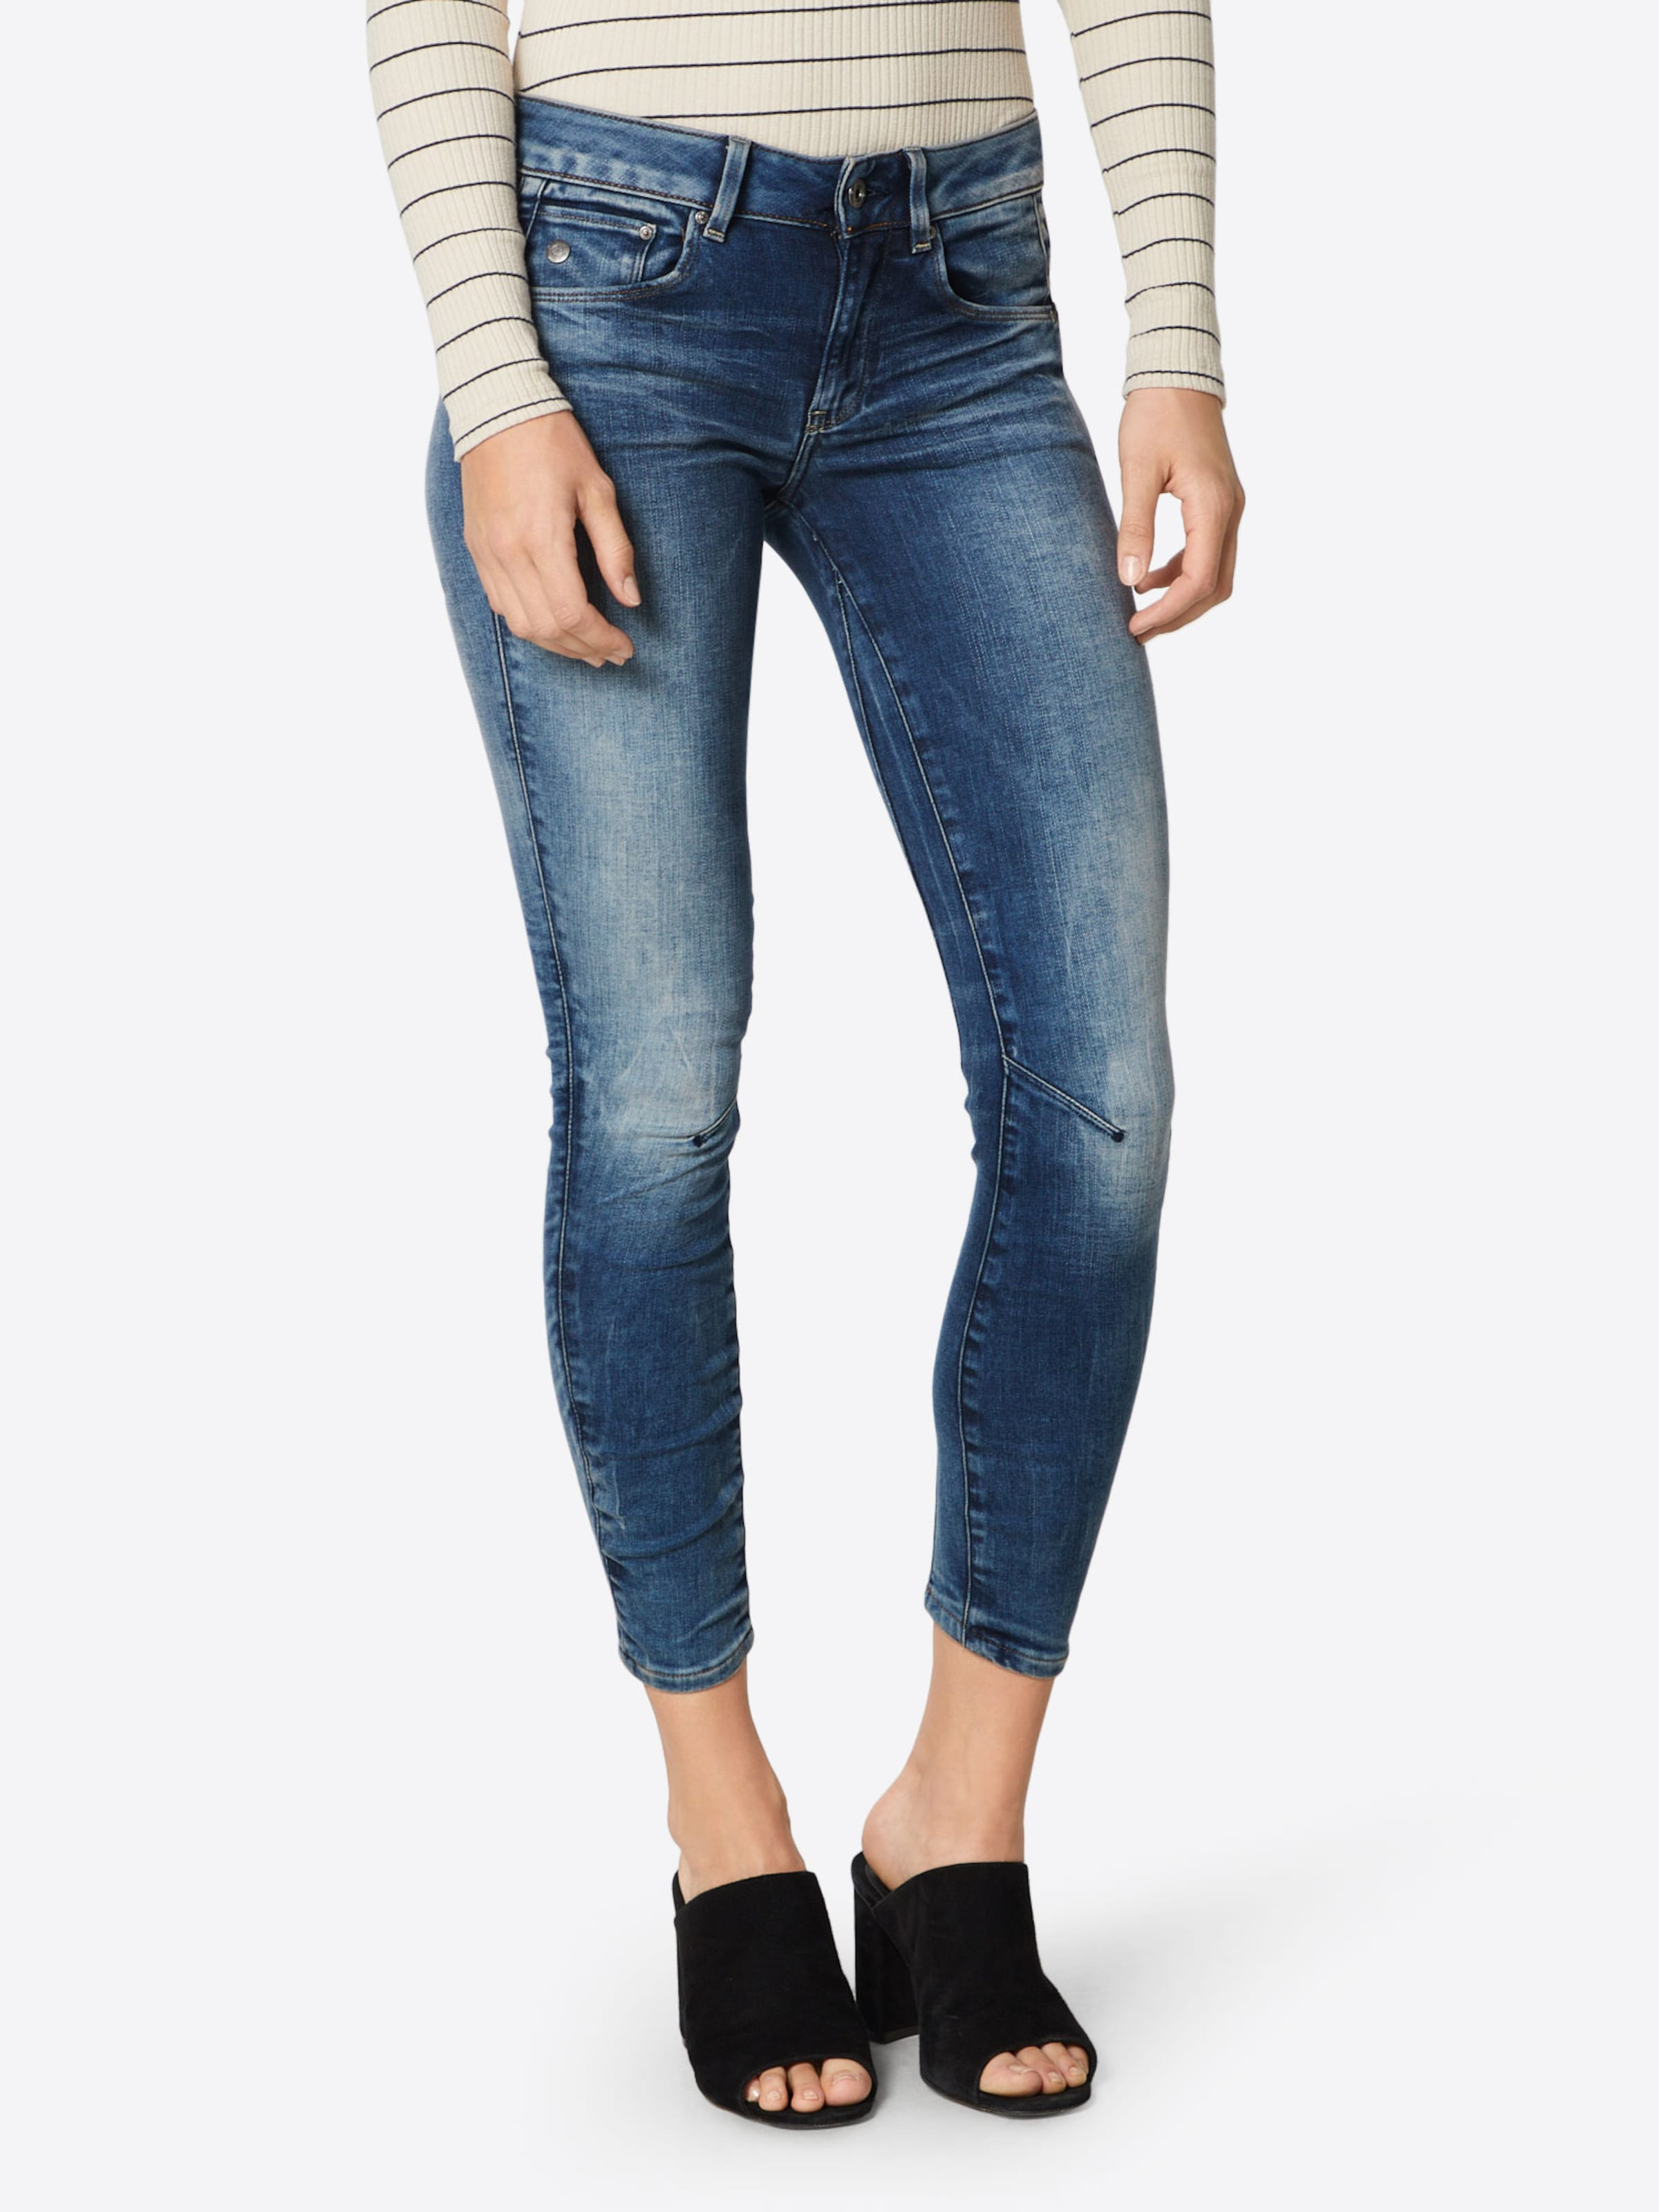 star 'arc 3d' In G Denim Raw Jeans Blauw T1lcFKJ